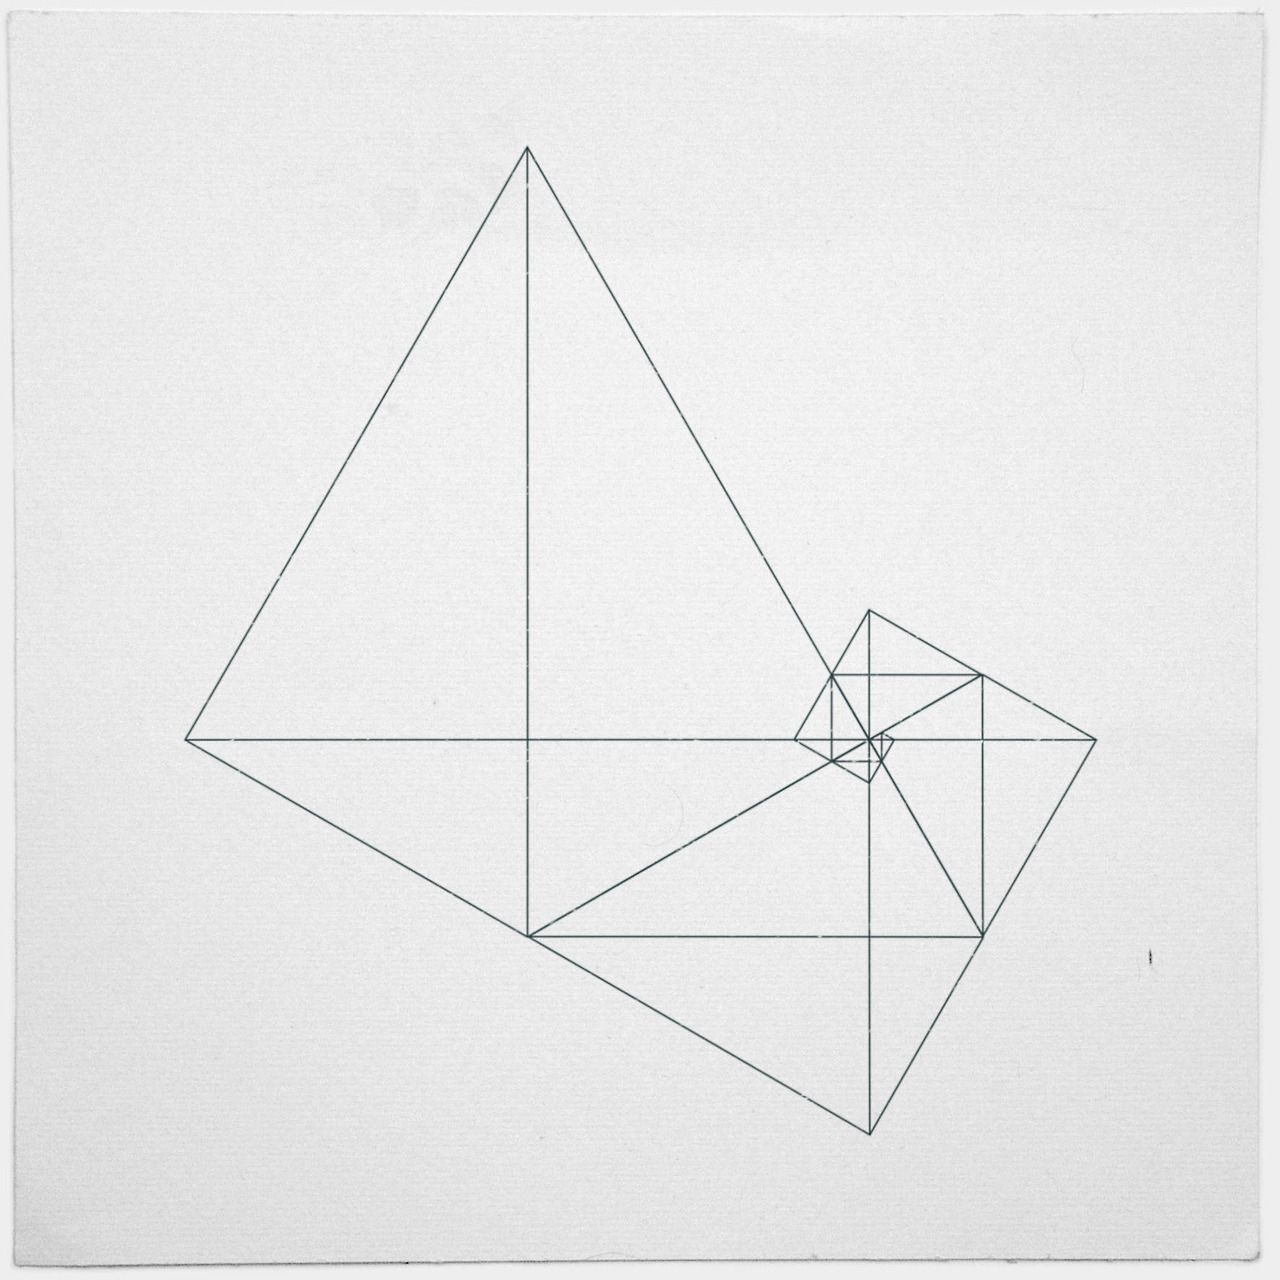 The beauty is already THERE, in the way geometry works. It